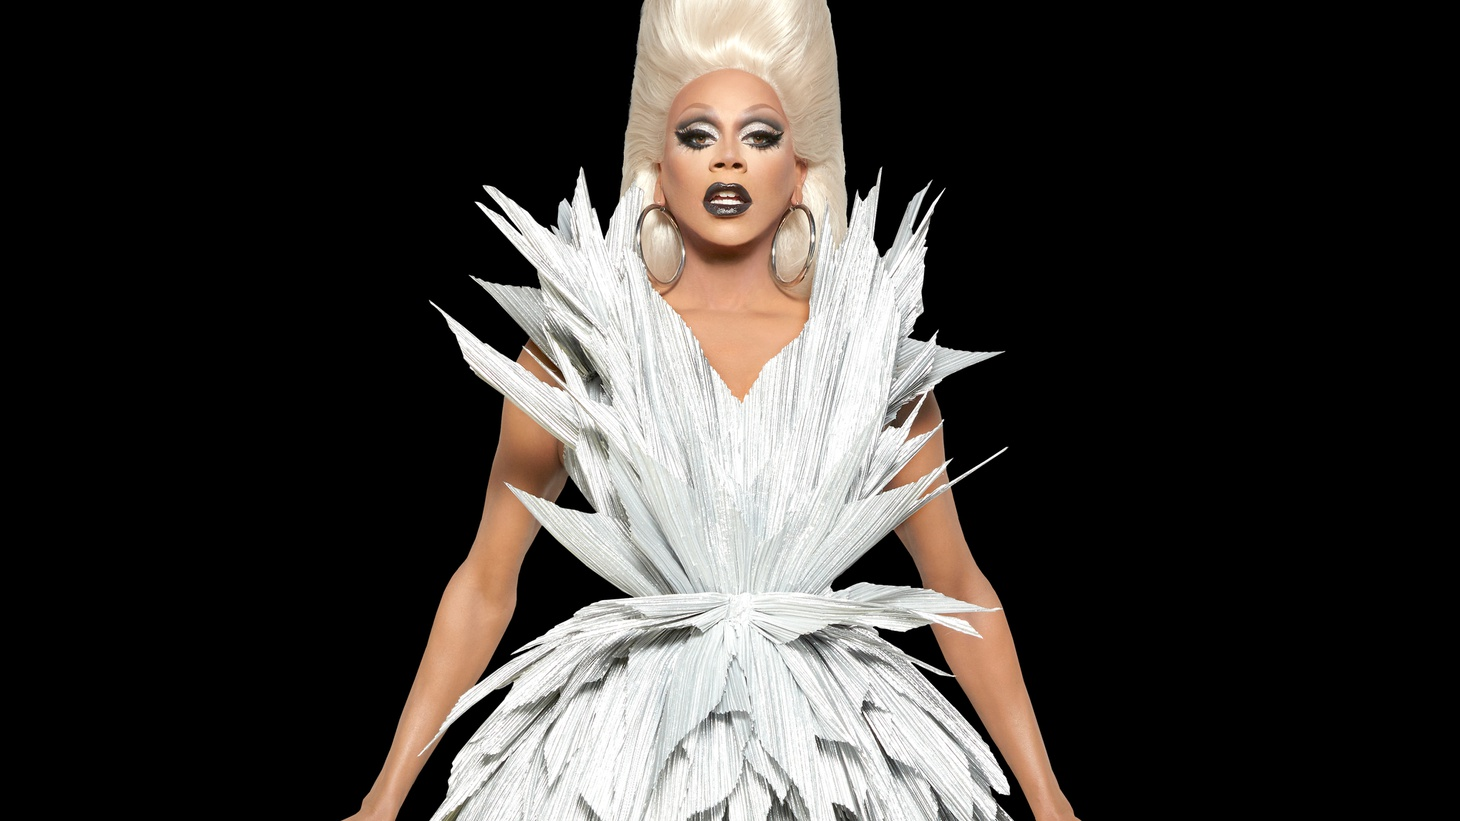 Actor and drag queen extraordinaire, RuPaul joins Elvis Mitchell to discuss mainstream success of RuPaul's Drag Race.